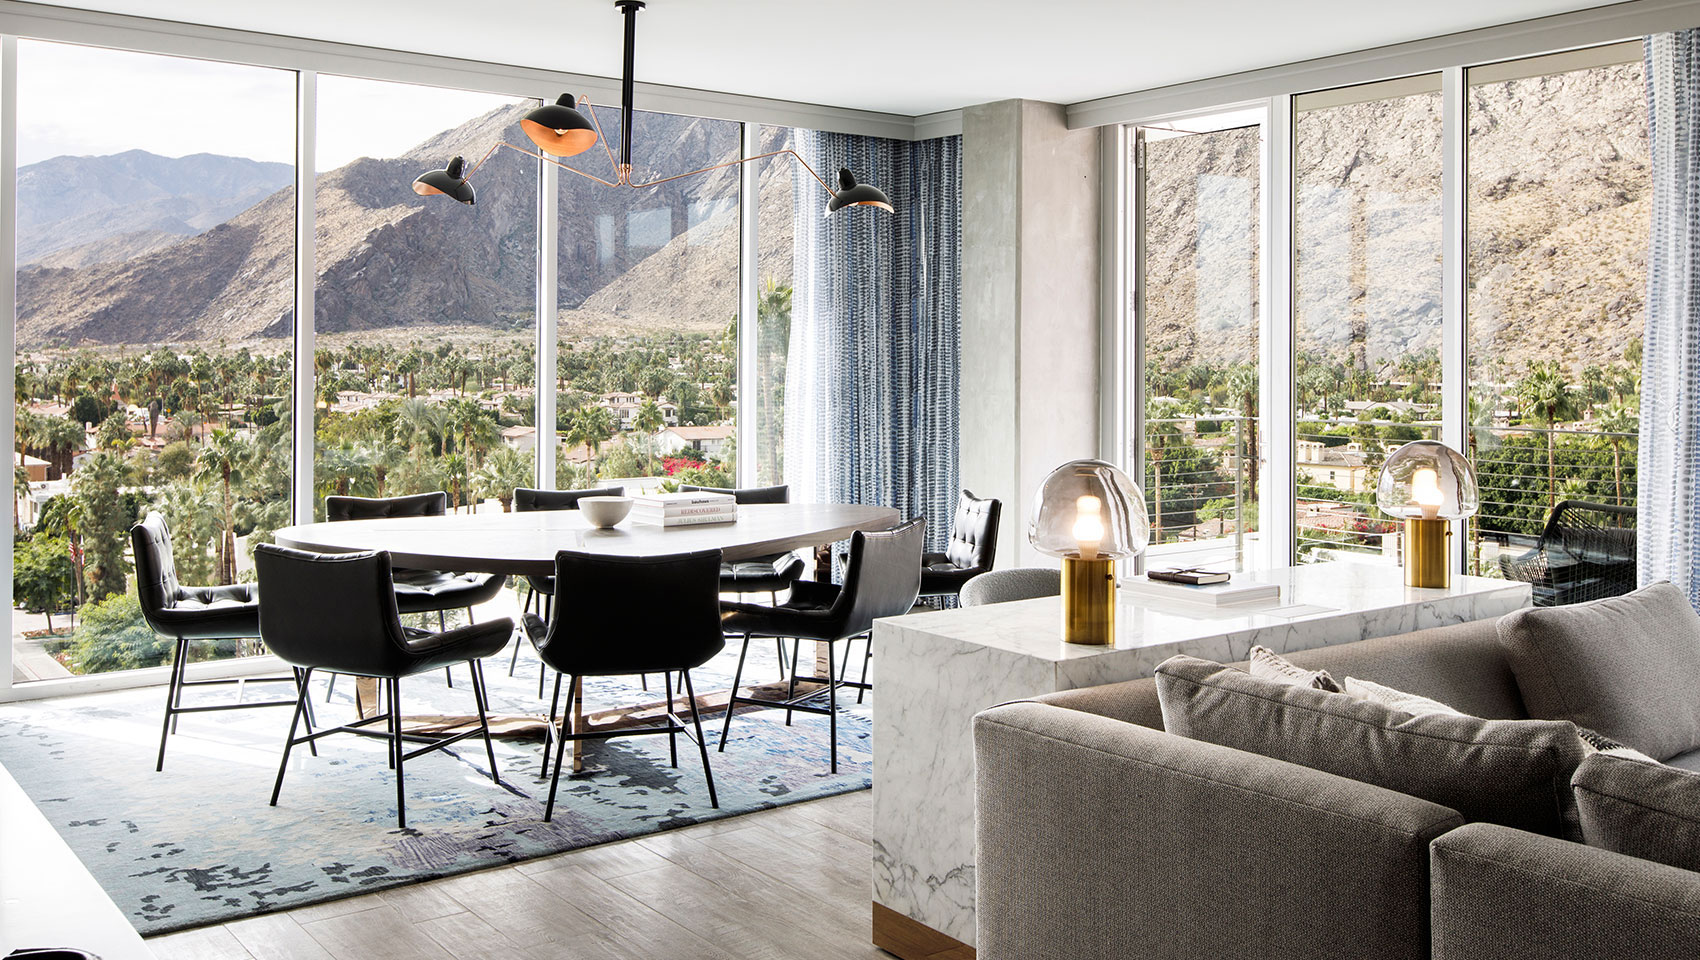 arlo-suite-dining-room-mountain-view-rowan-palm-springs